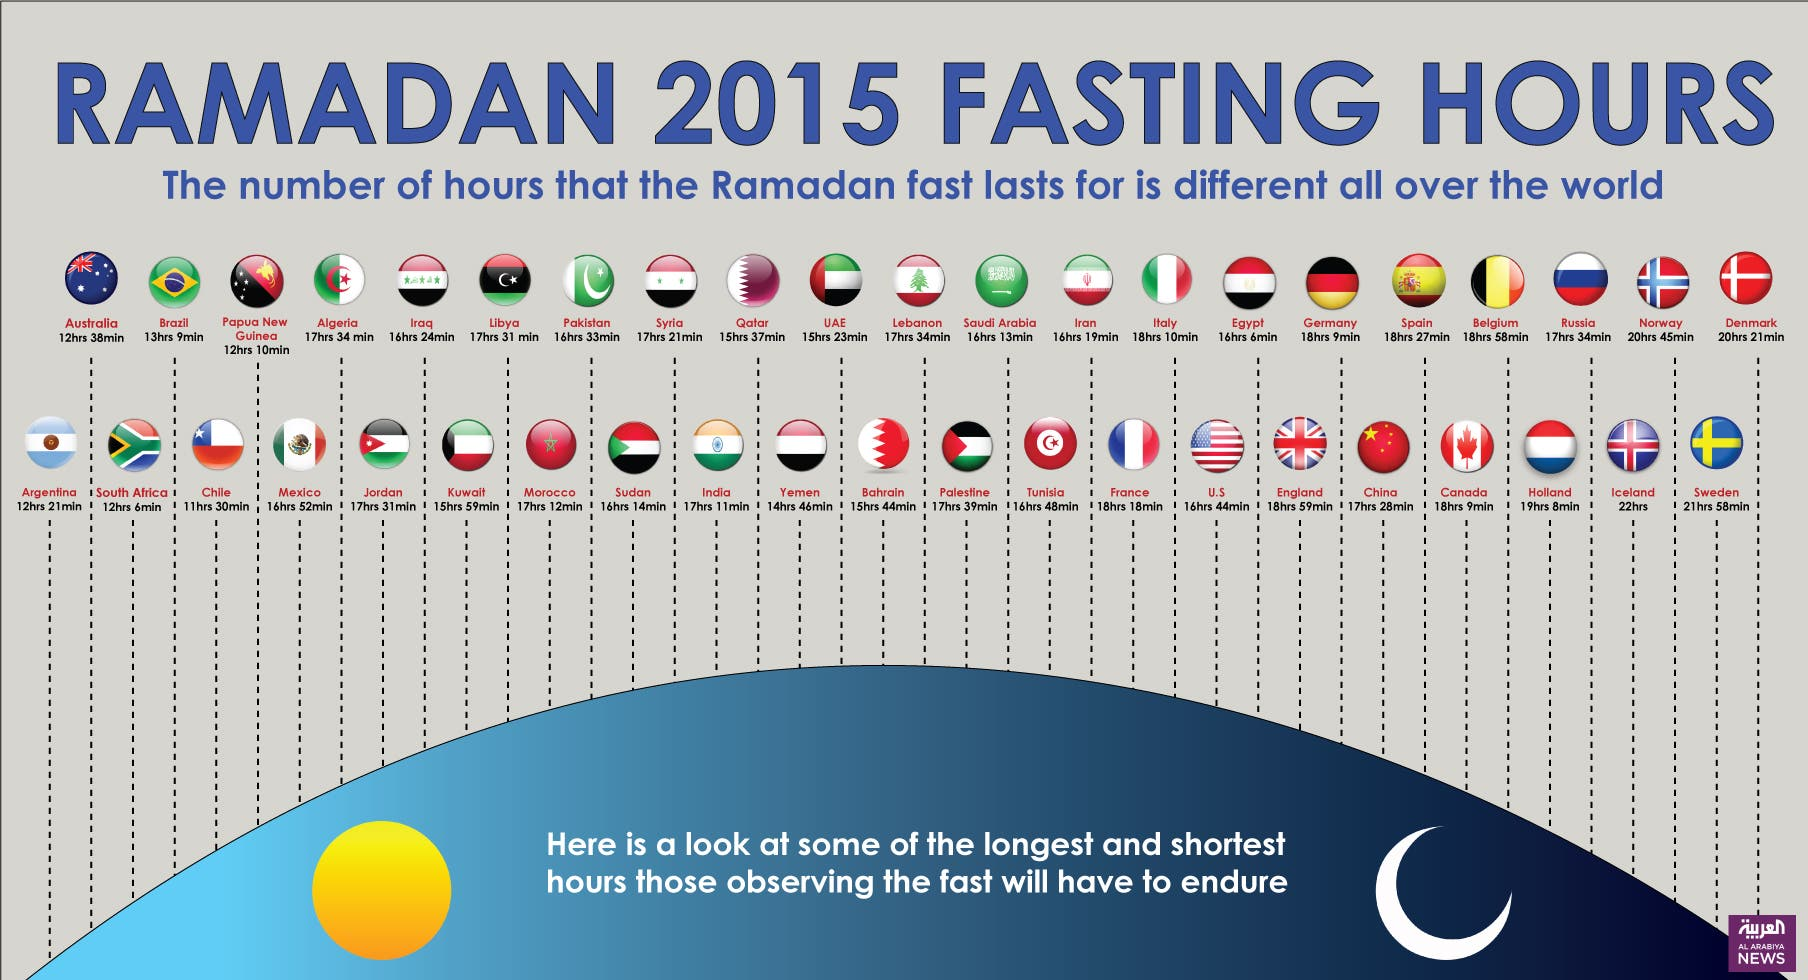 Infographic: Ramadan 2015 fasting hours